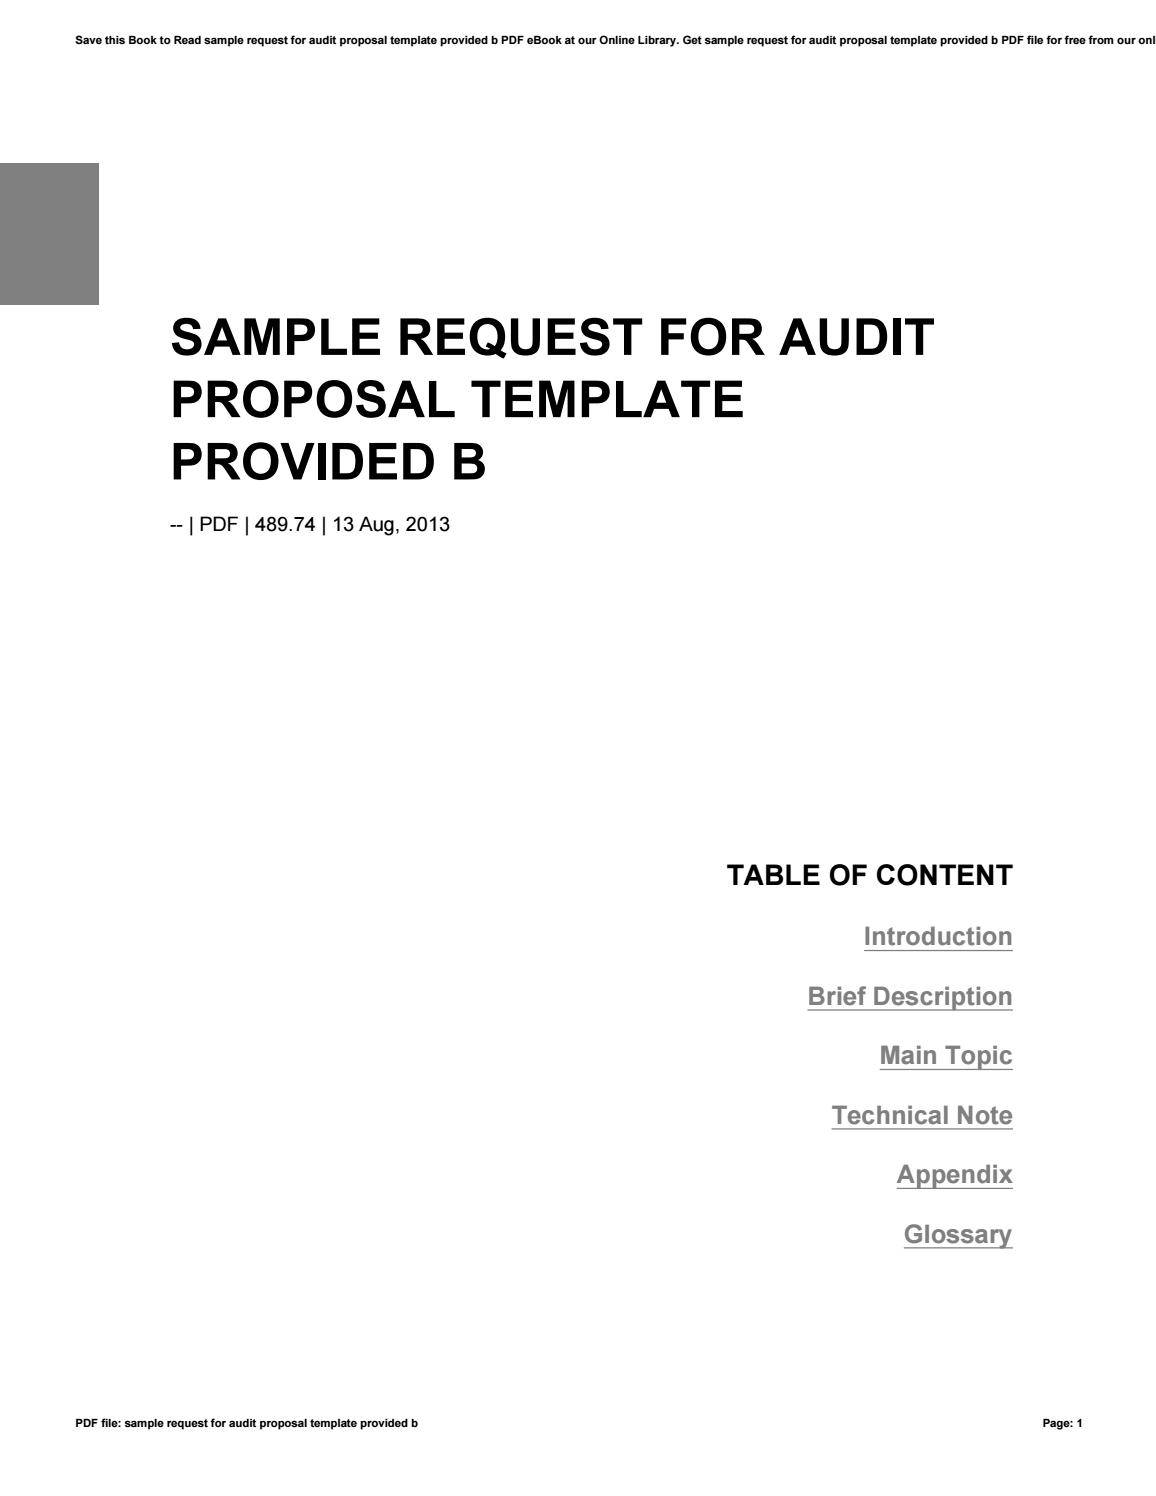 Request For Audit Proposal Template